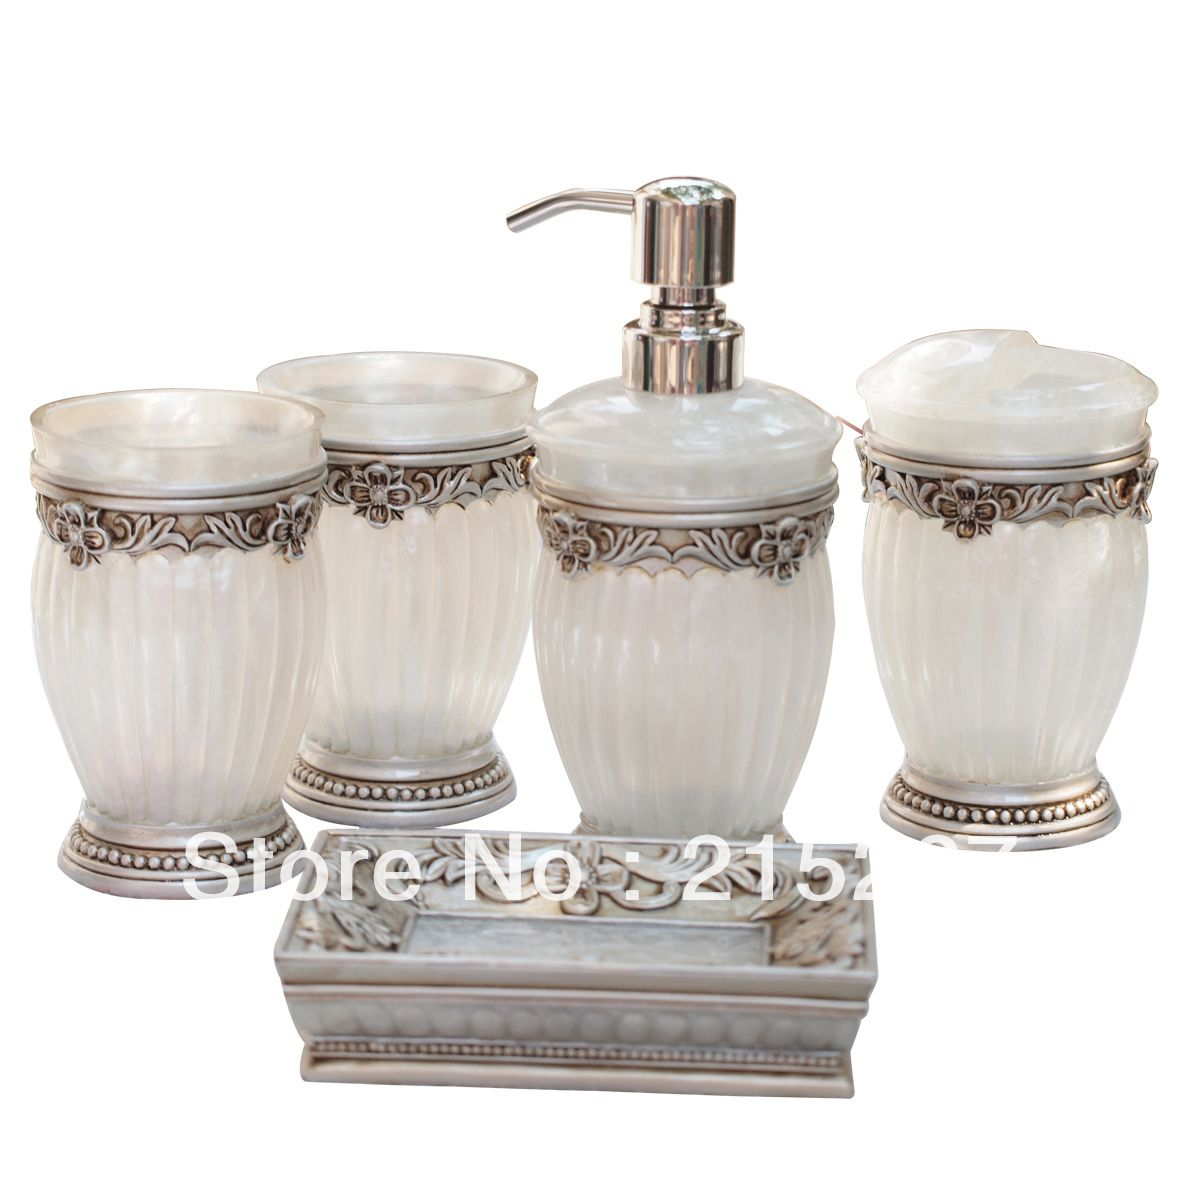 bathroom collections sets - kraisee